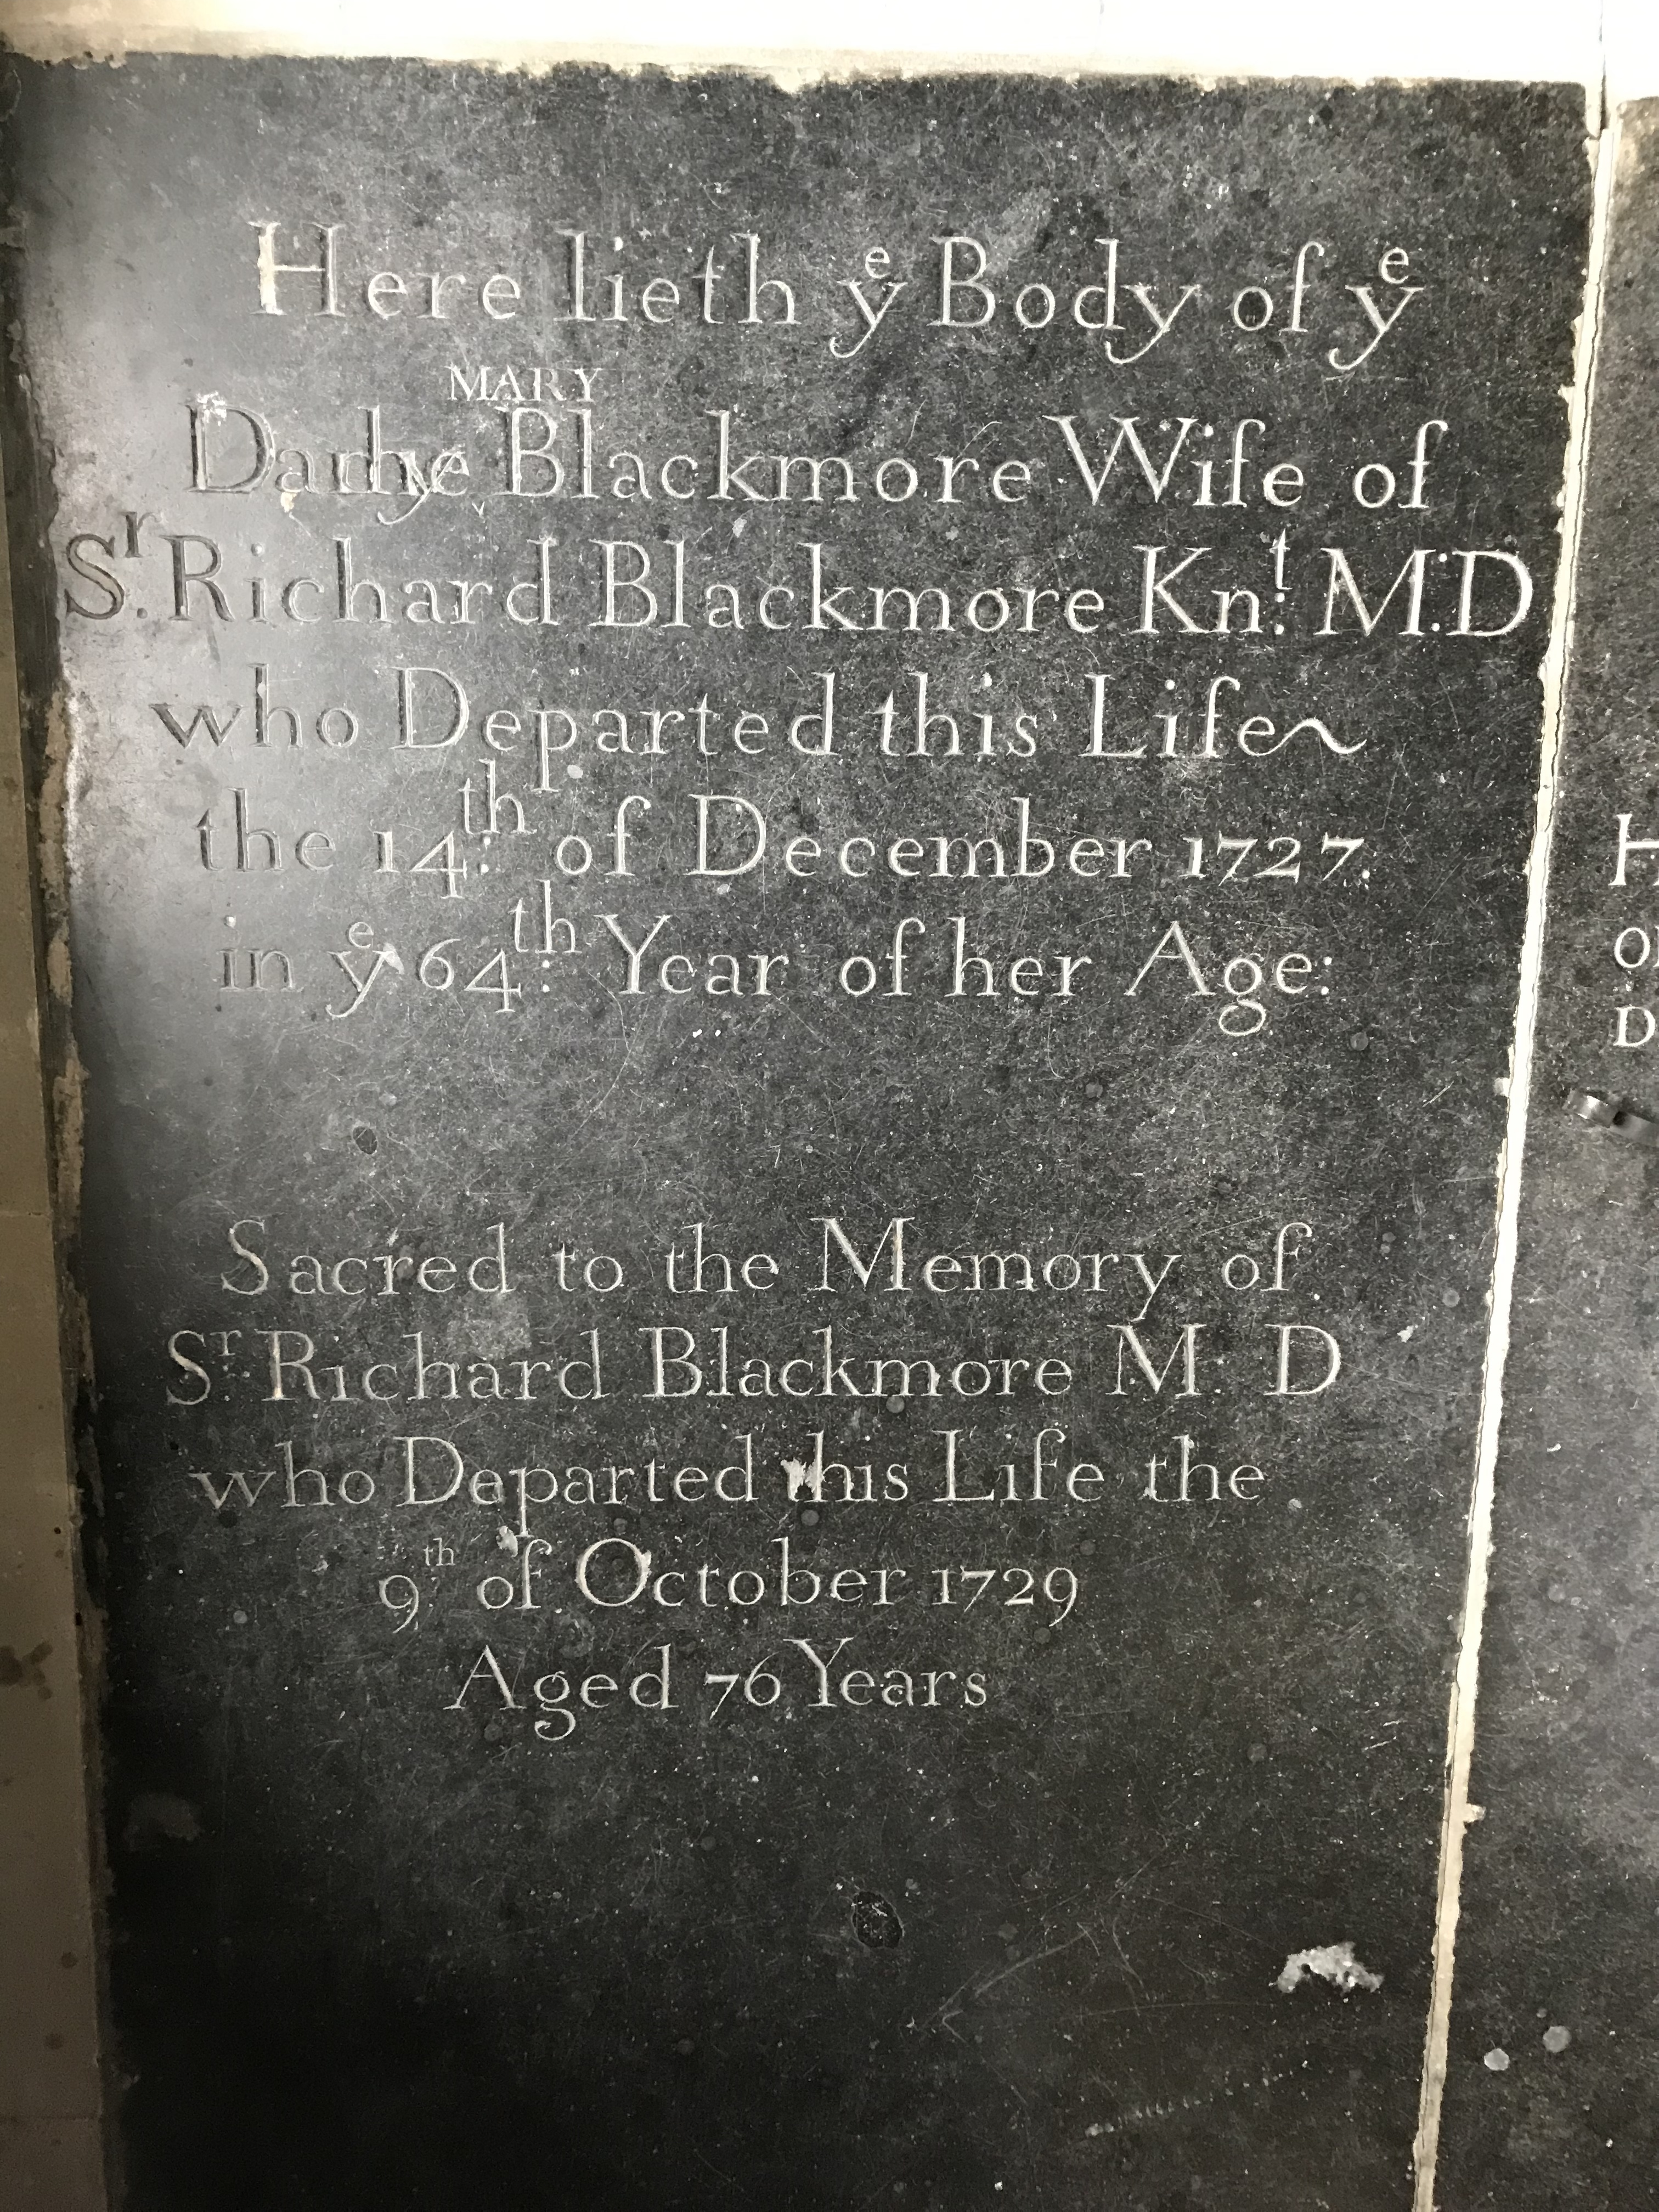 The grave of Richard Blackmore in the sanctuary of St Peter's Church, Boxted, Essex.